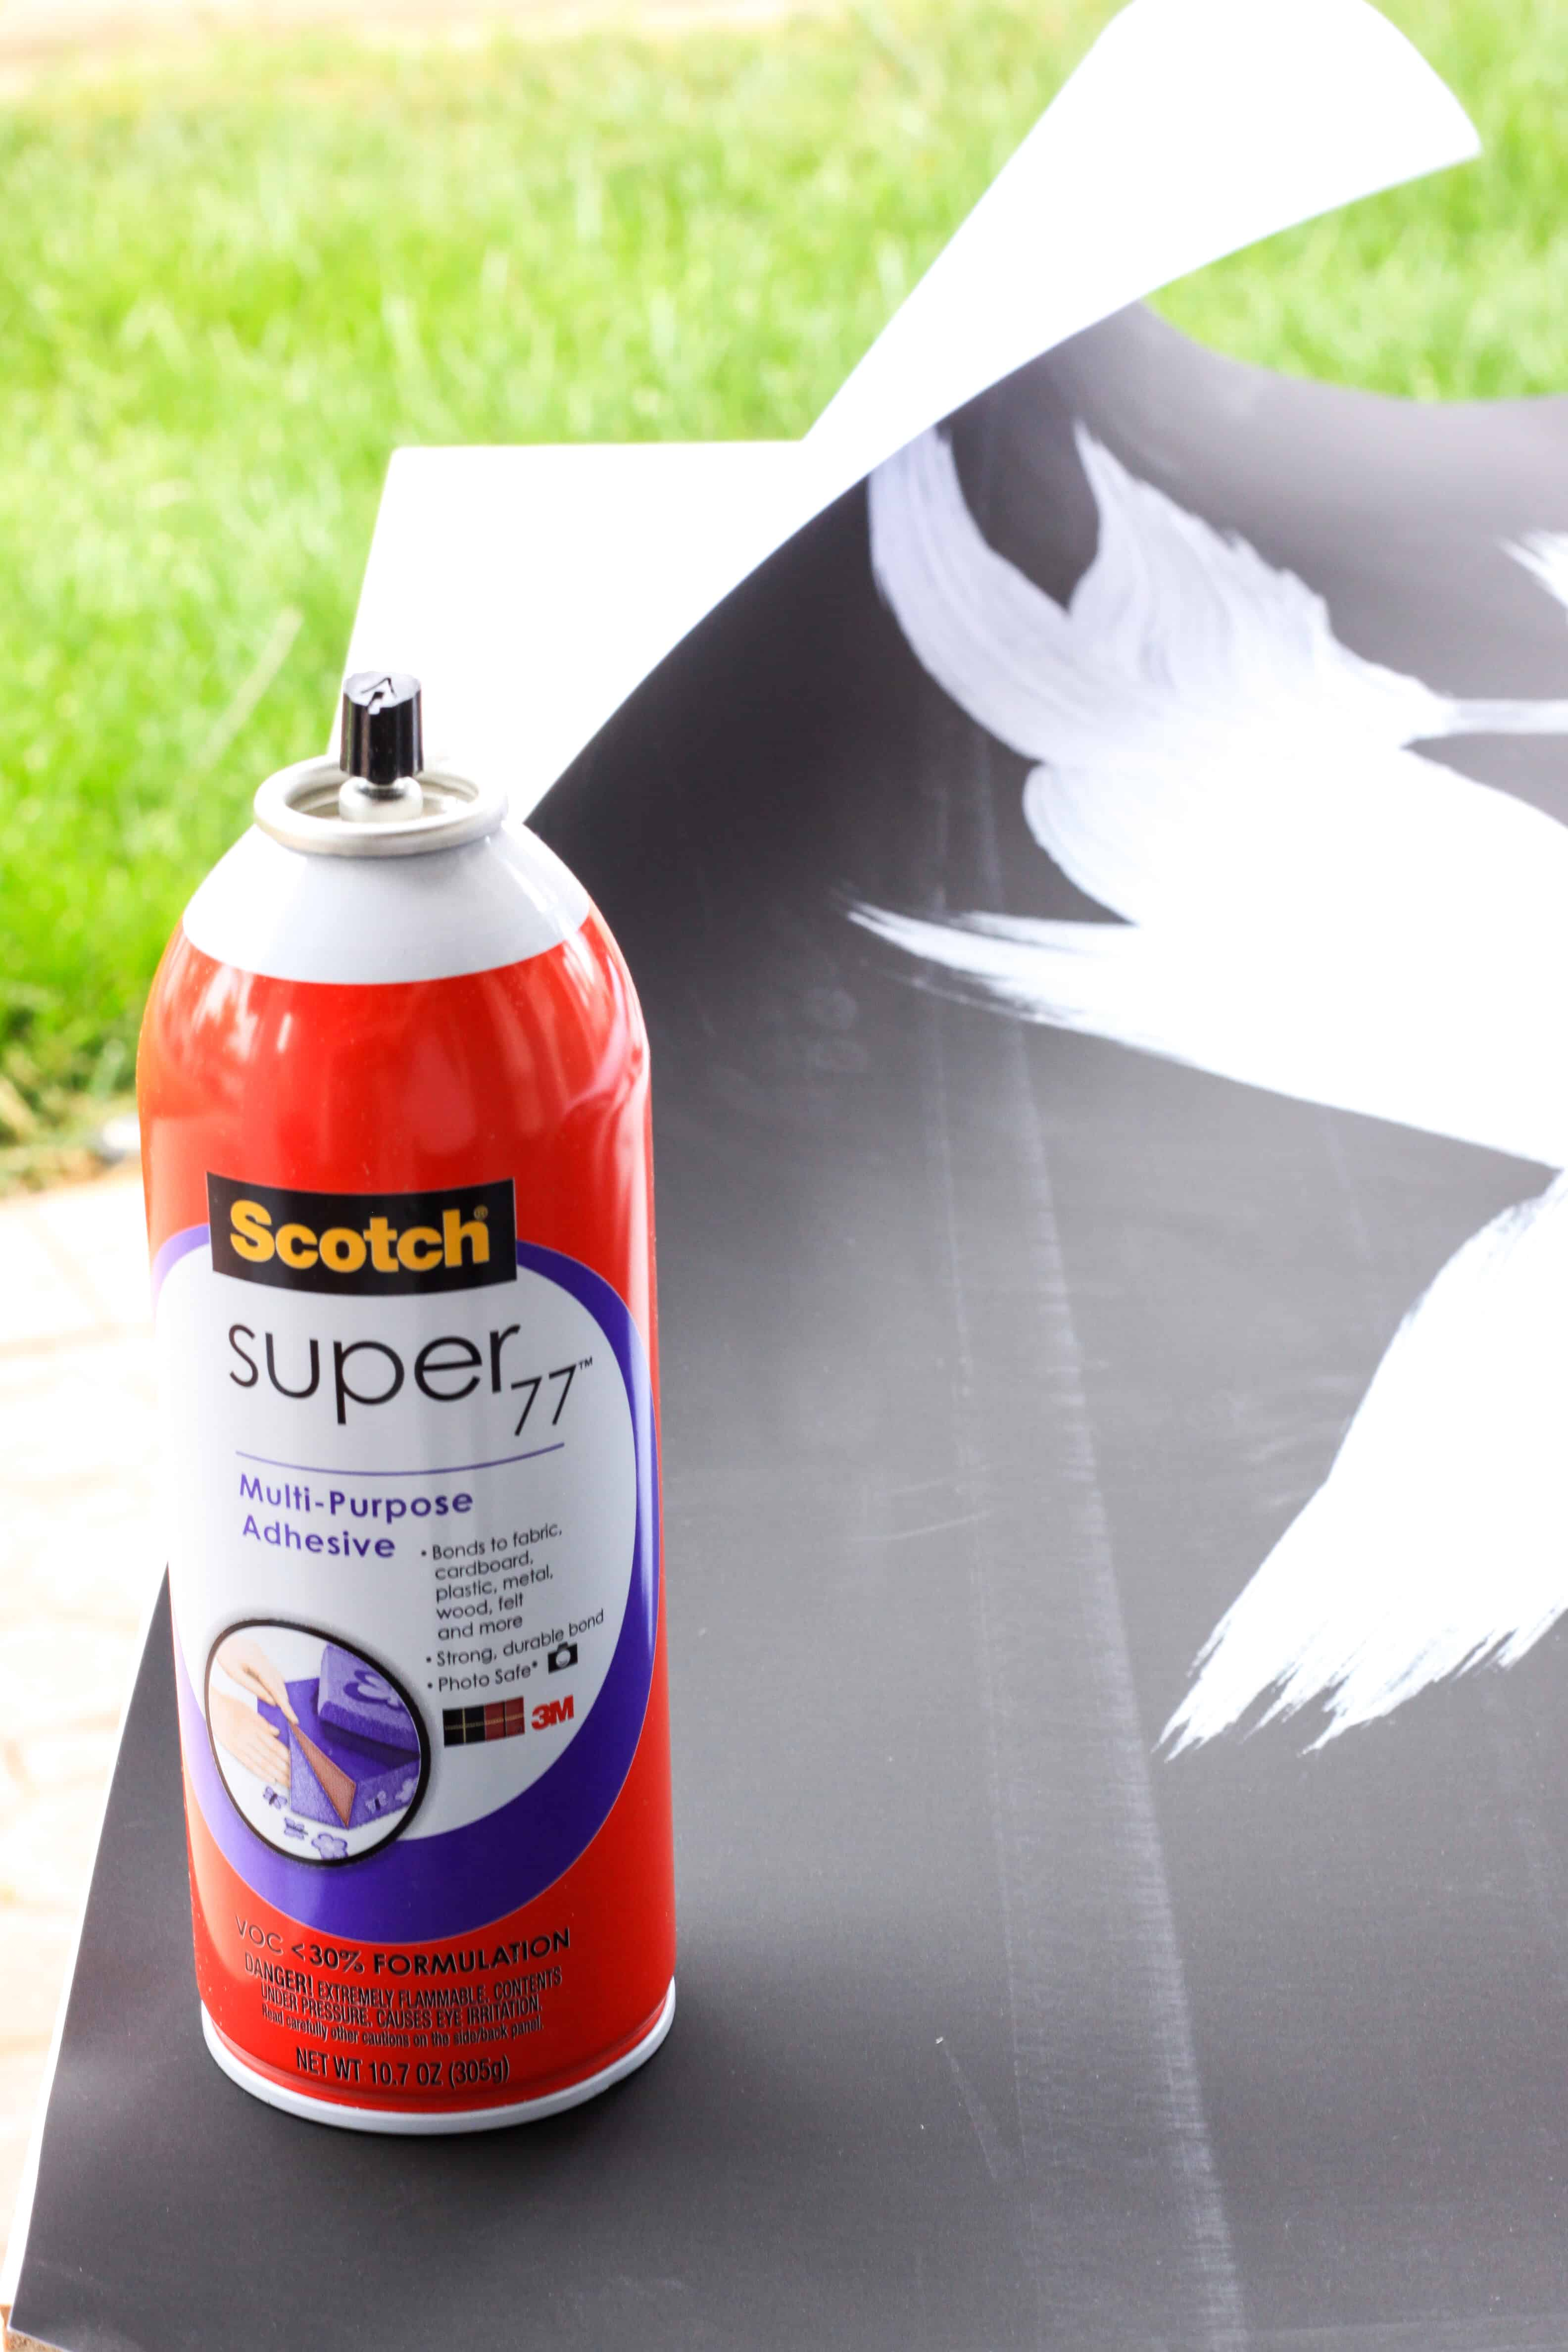 Adhesive for making a frame for artwork